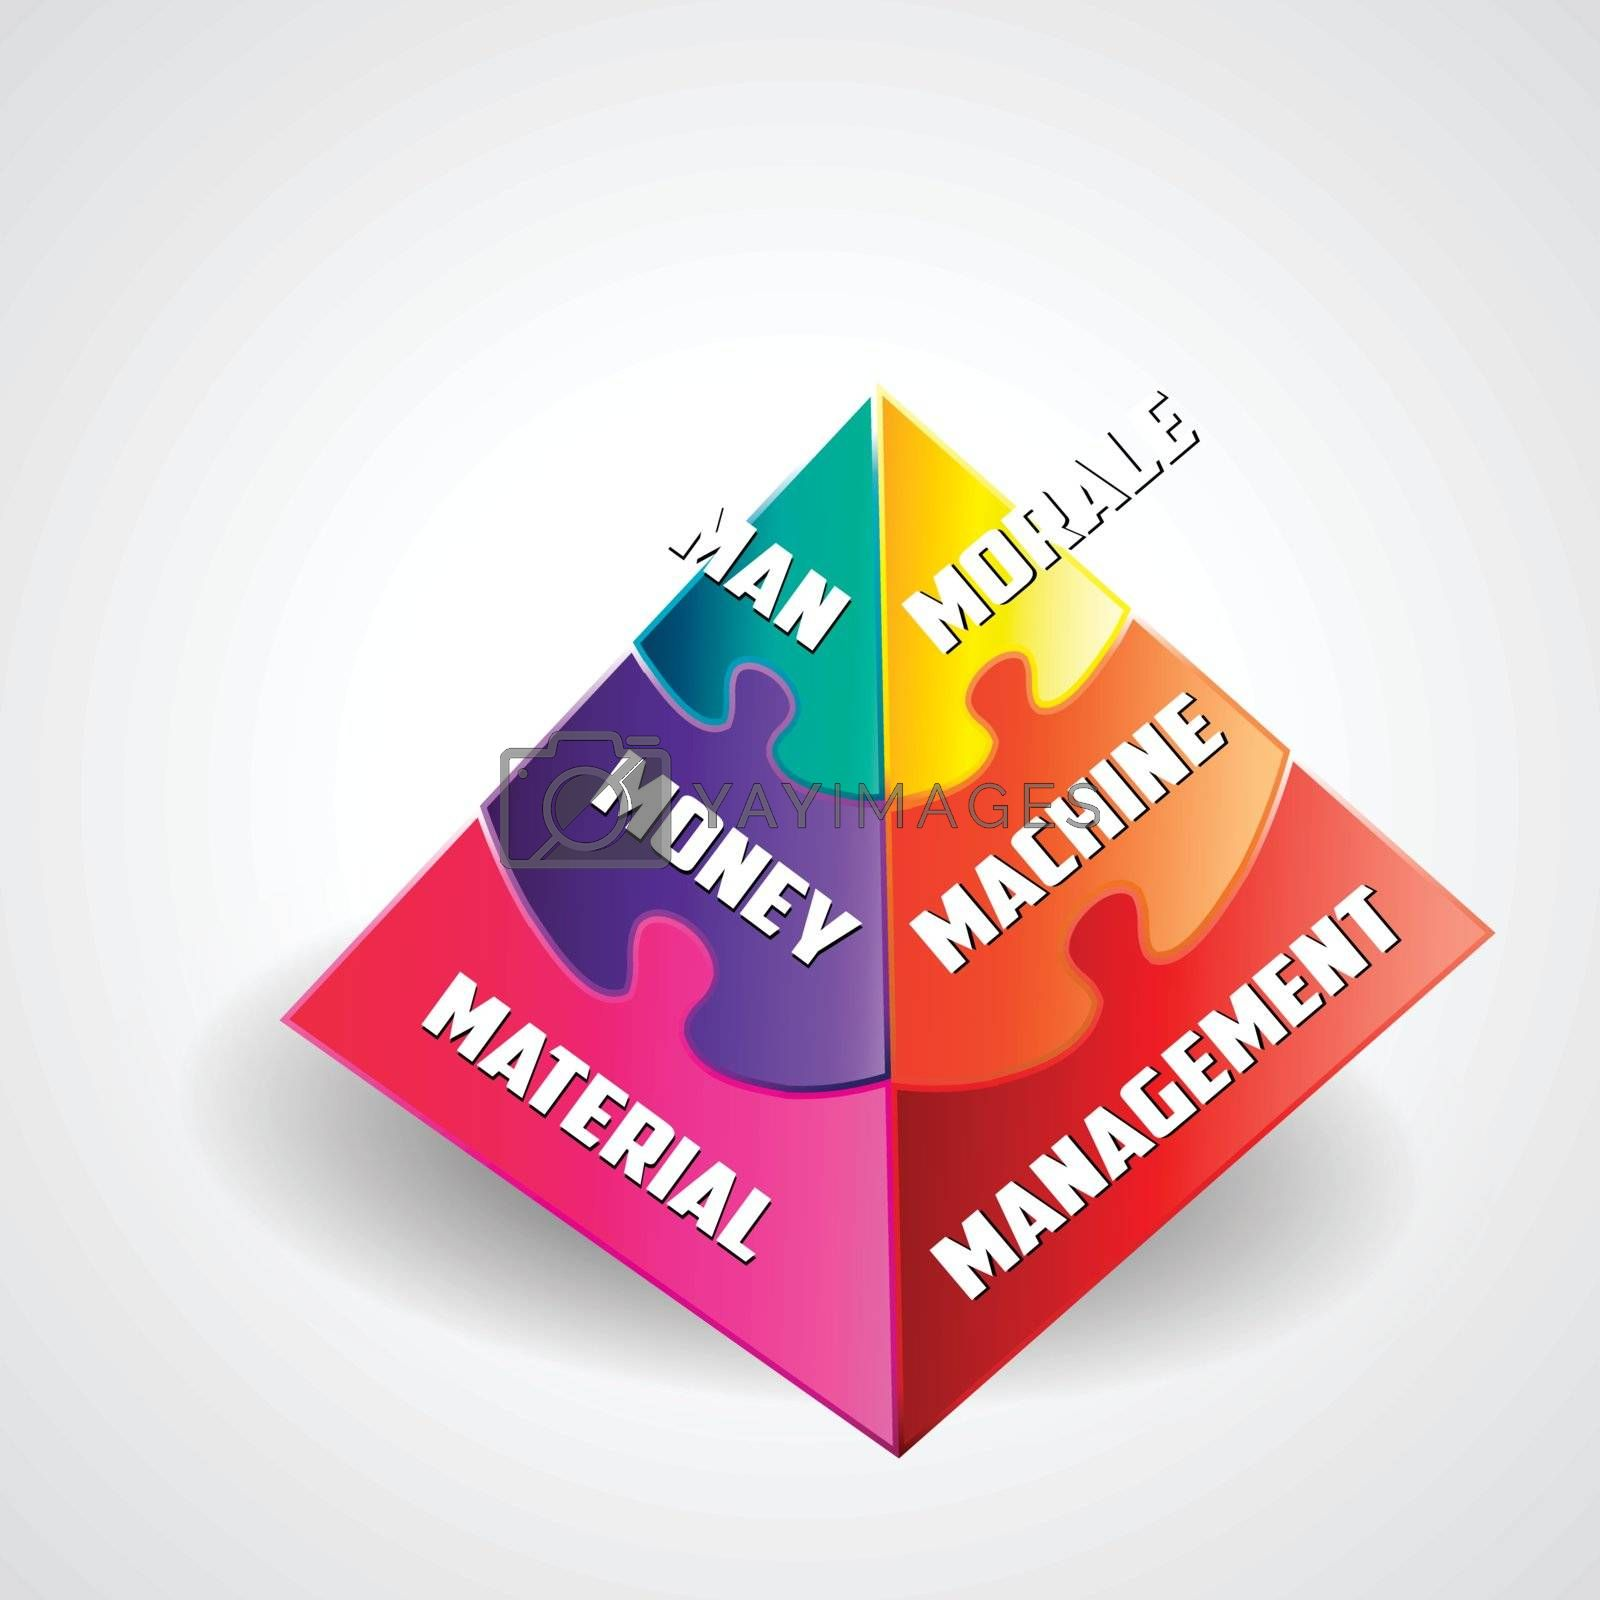 Pyramid Chart of 6M s of management